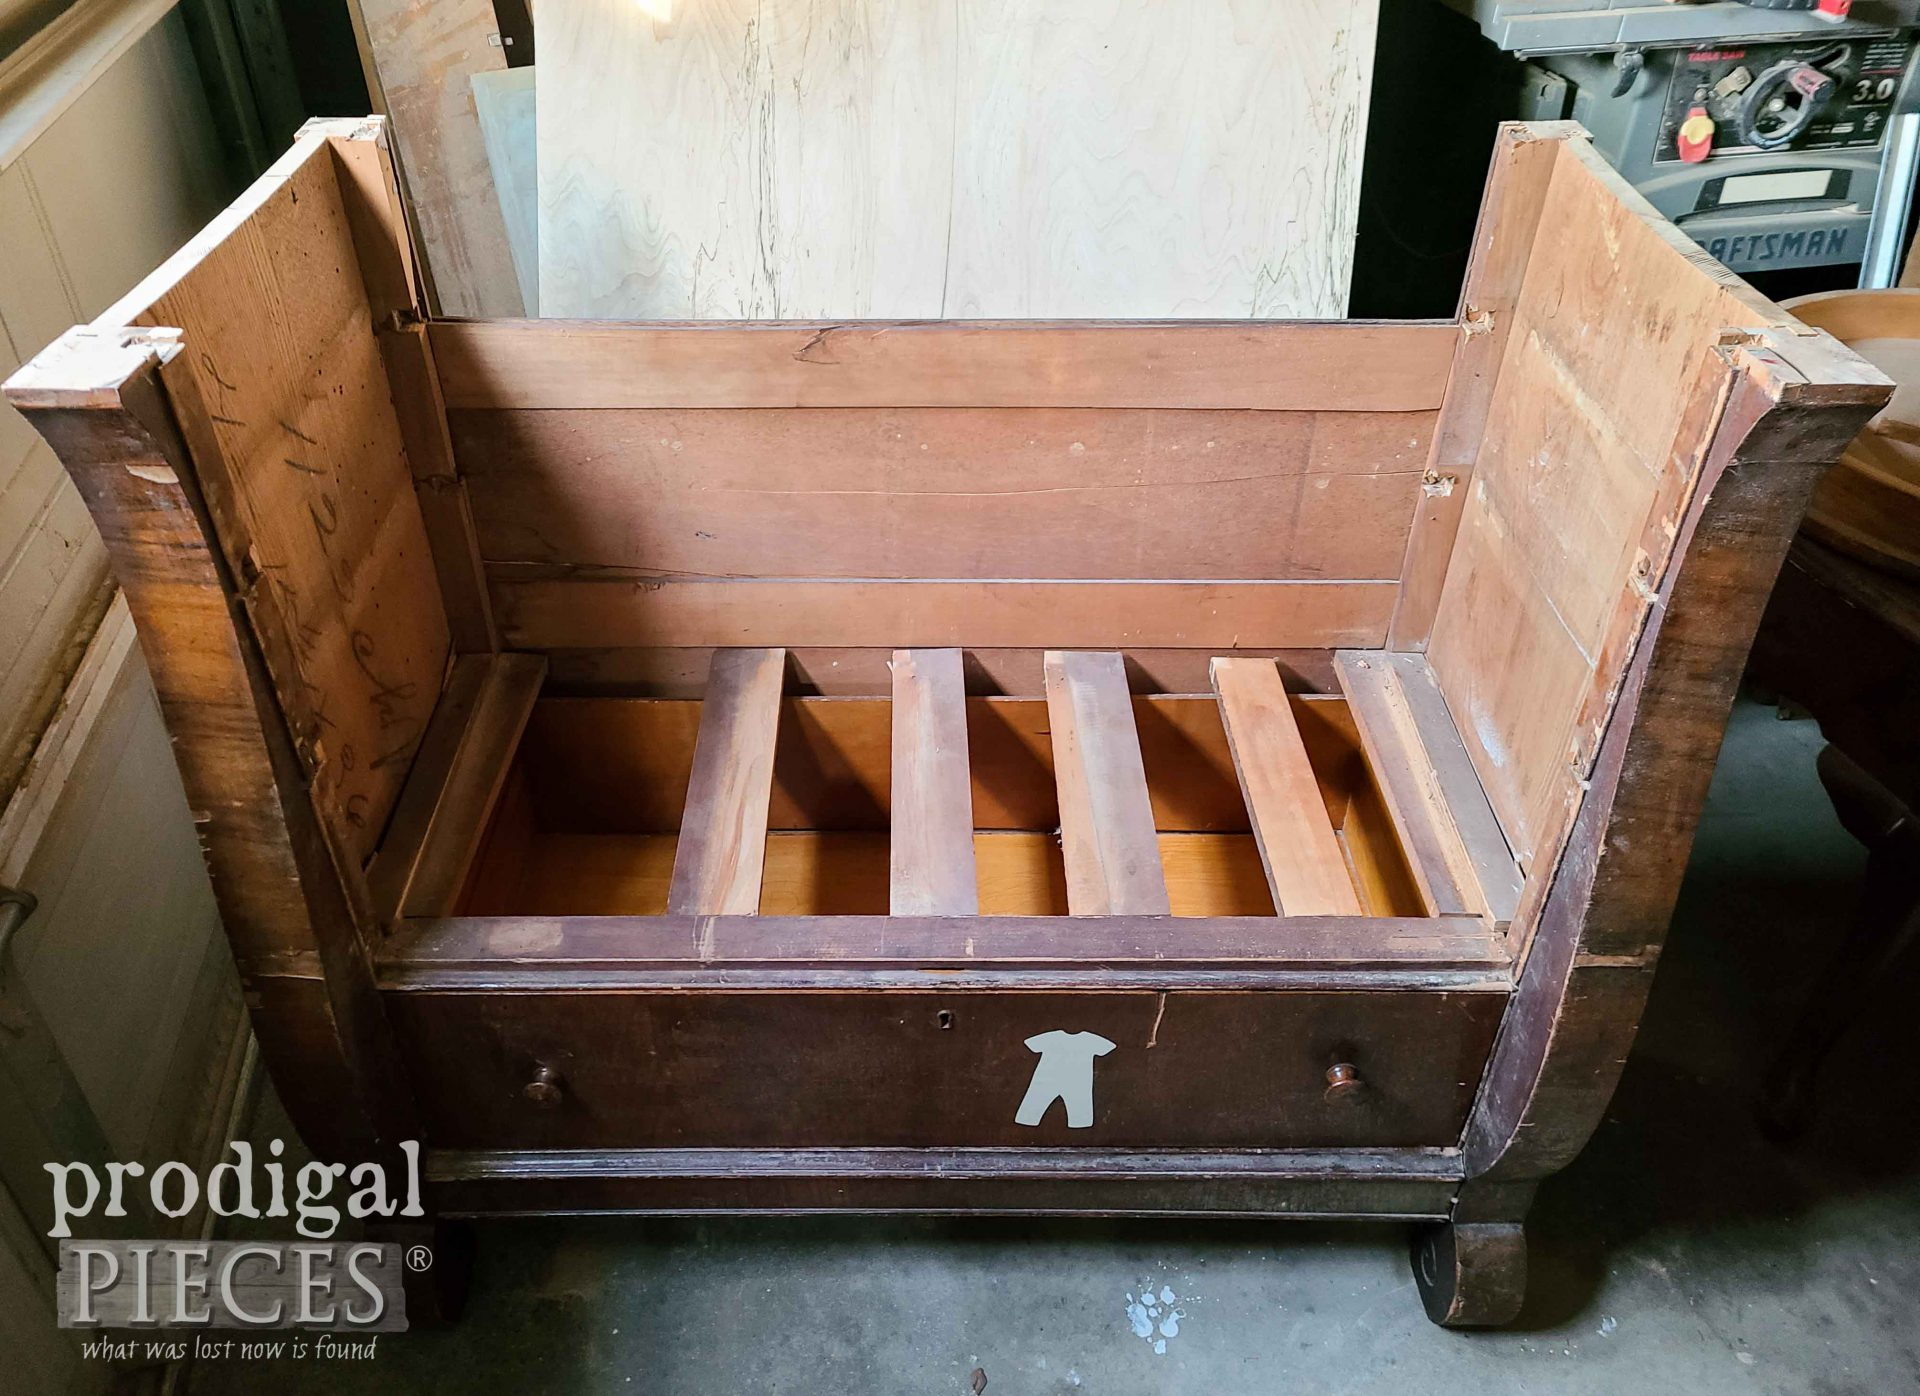 Upcycled Chest of Drawers Bench Dry Fit by Prodigal Pieces | prodigalpieces.com